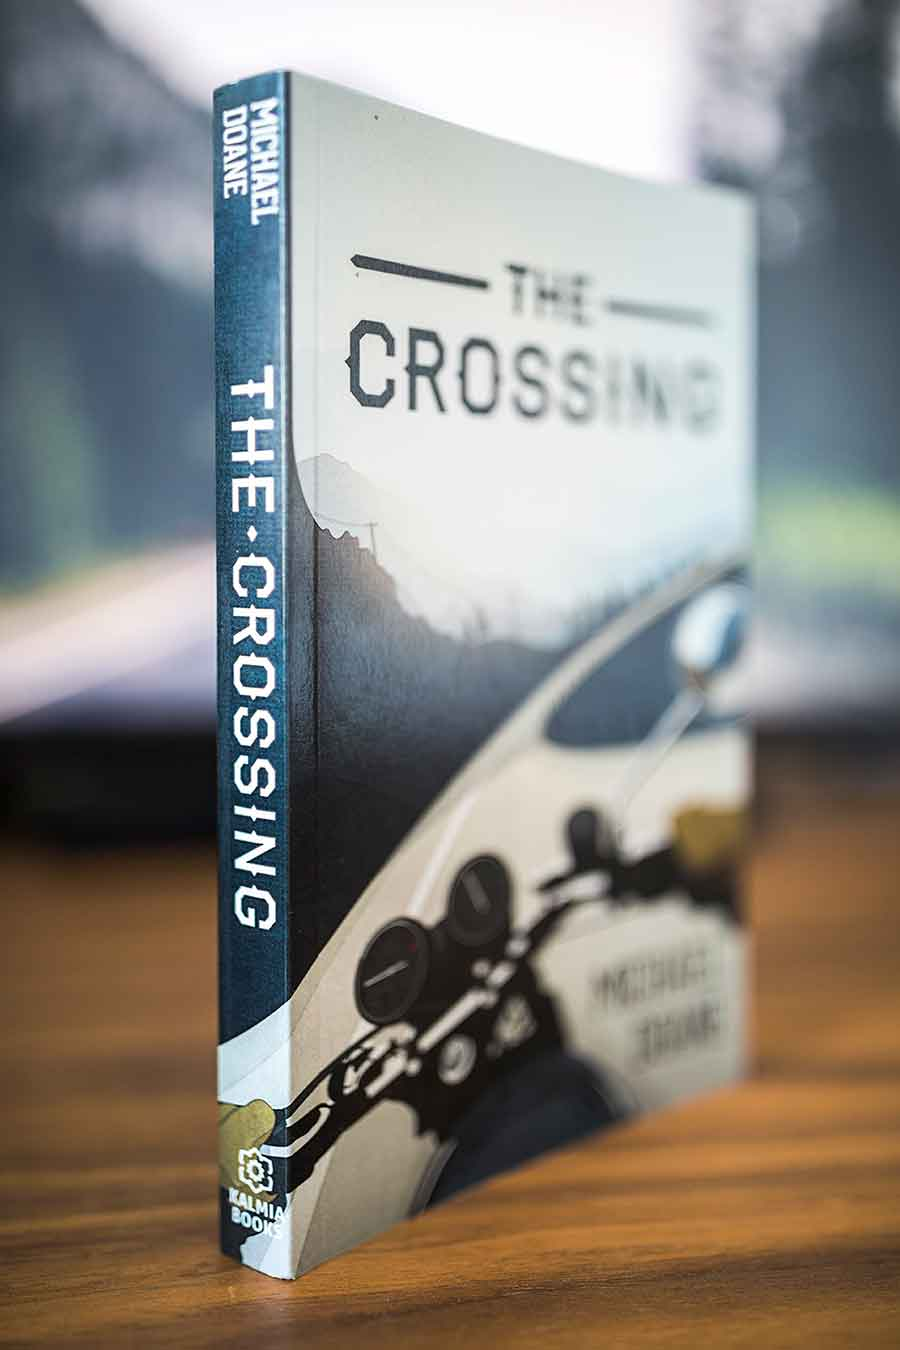 Reading The Crossing